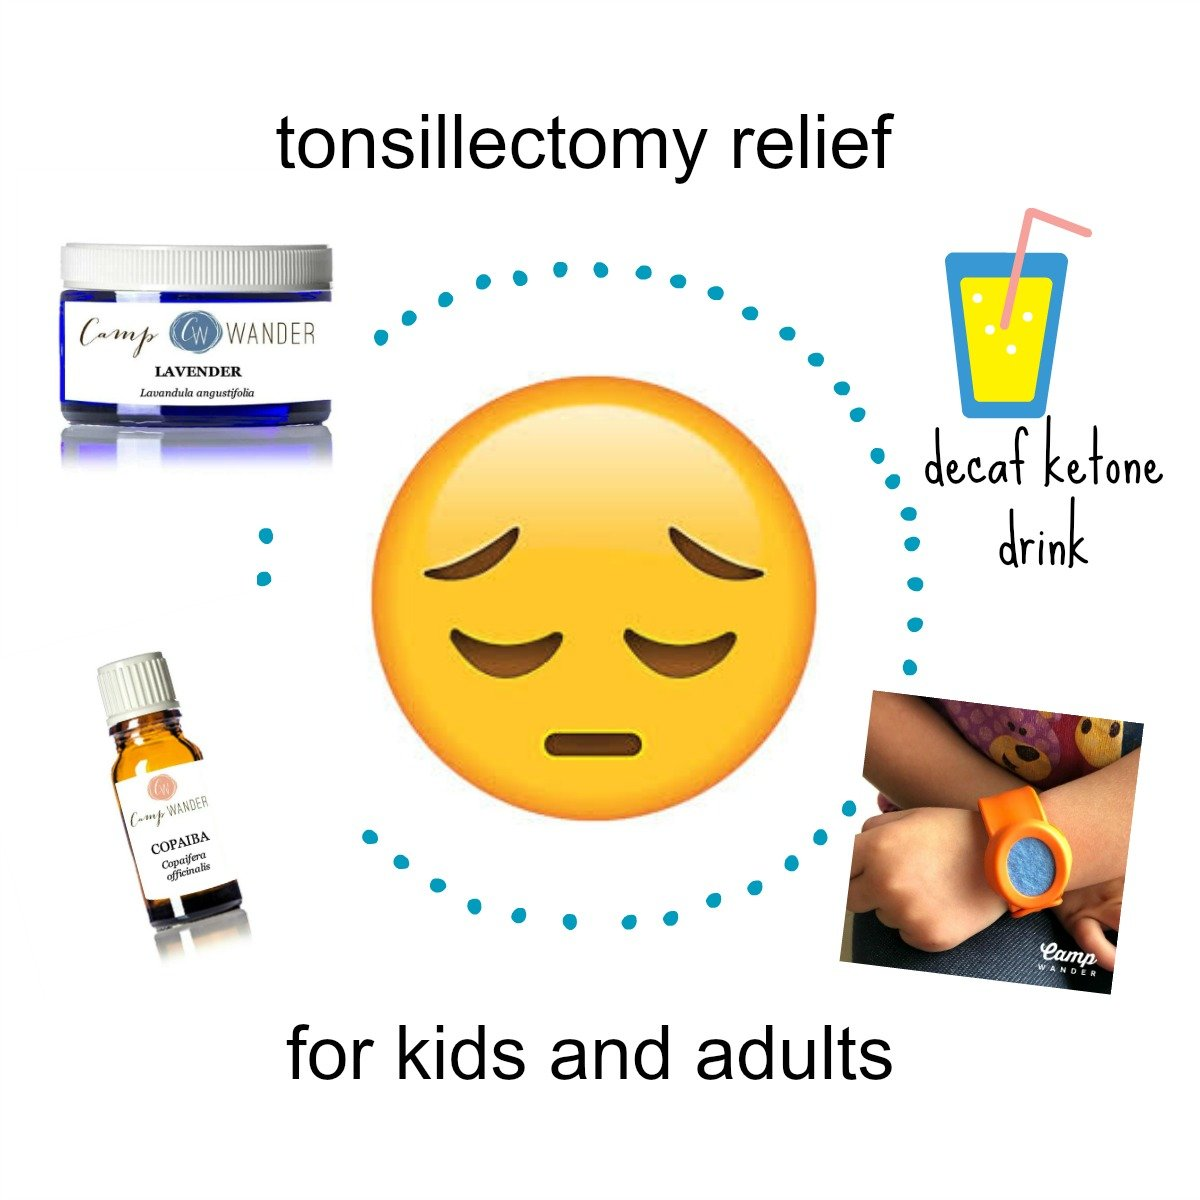 4 Kid Friendly Ideas for Tonsillectomy Pain